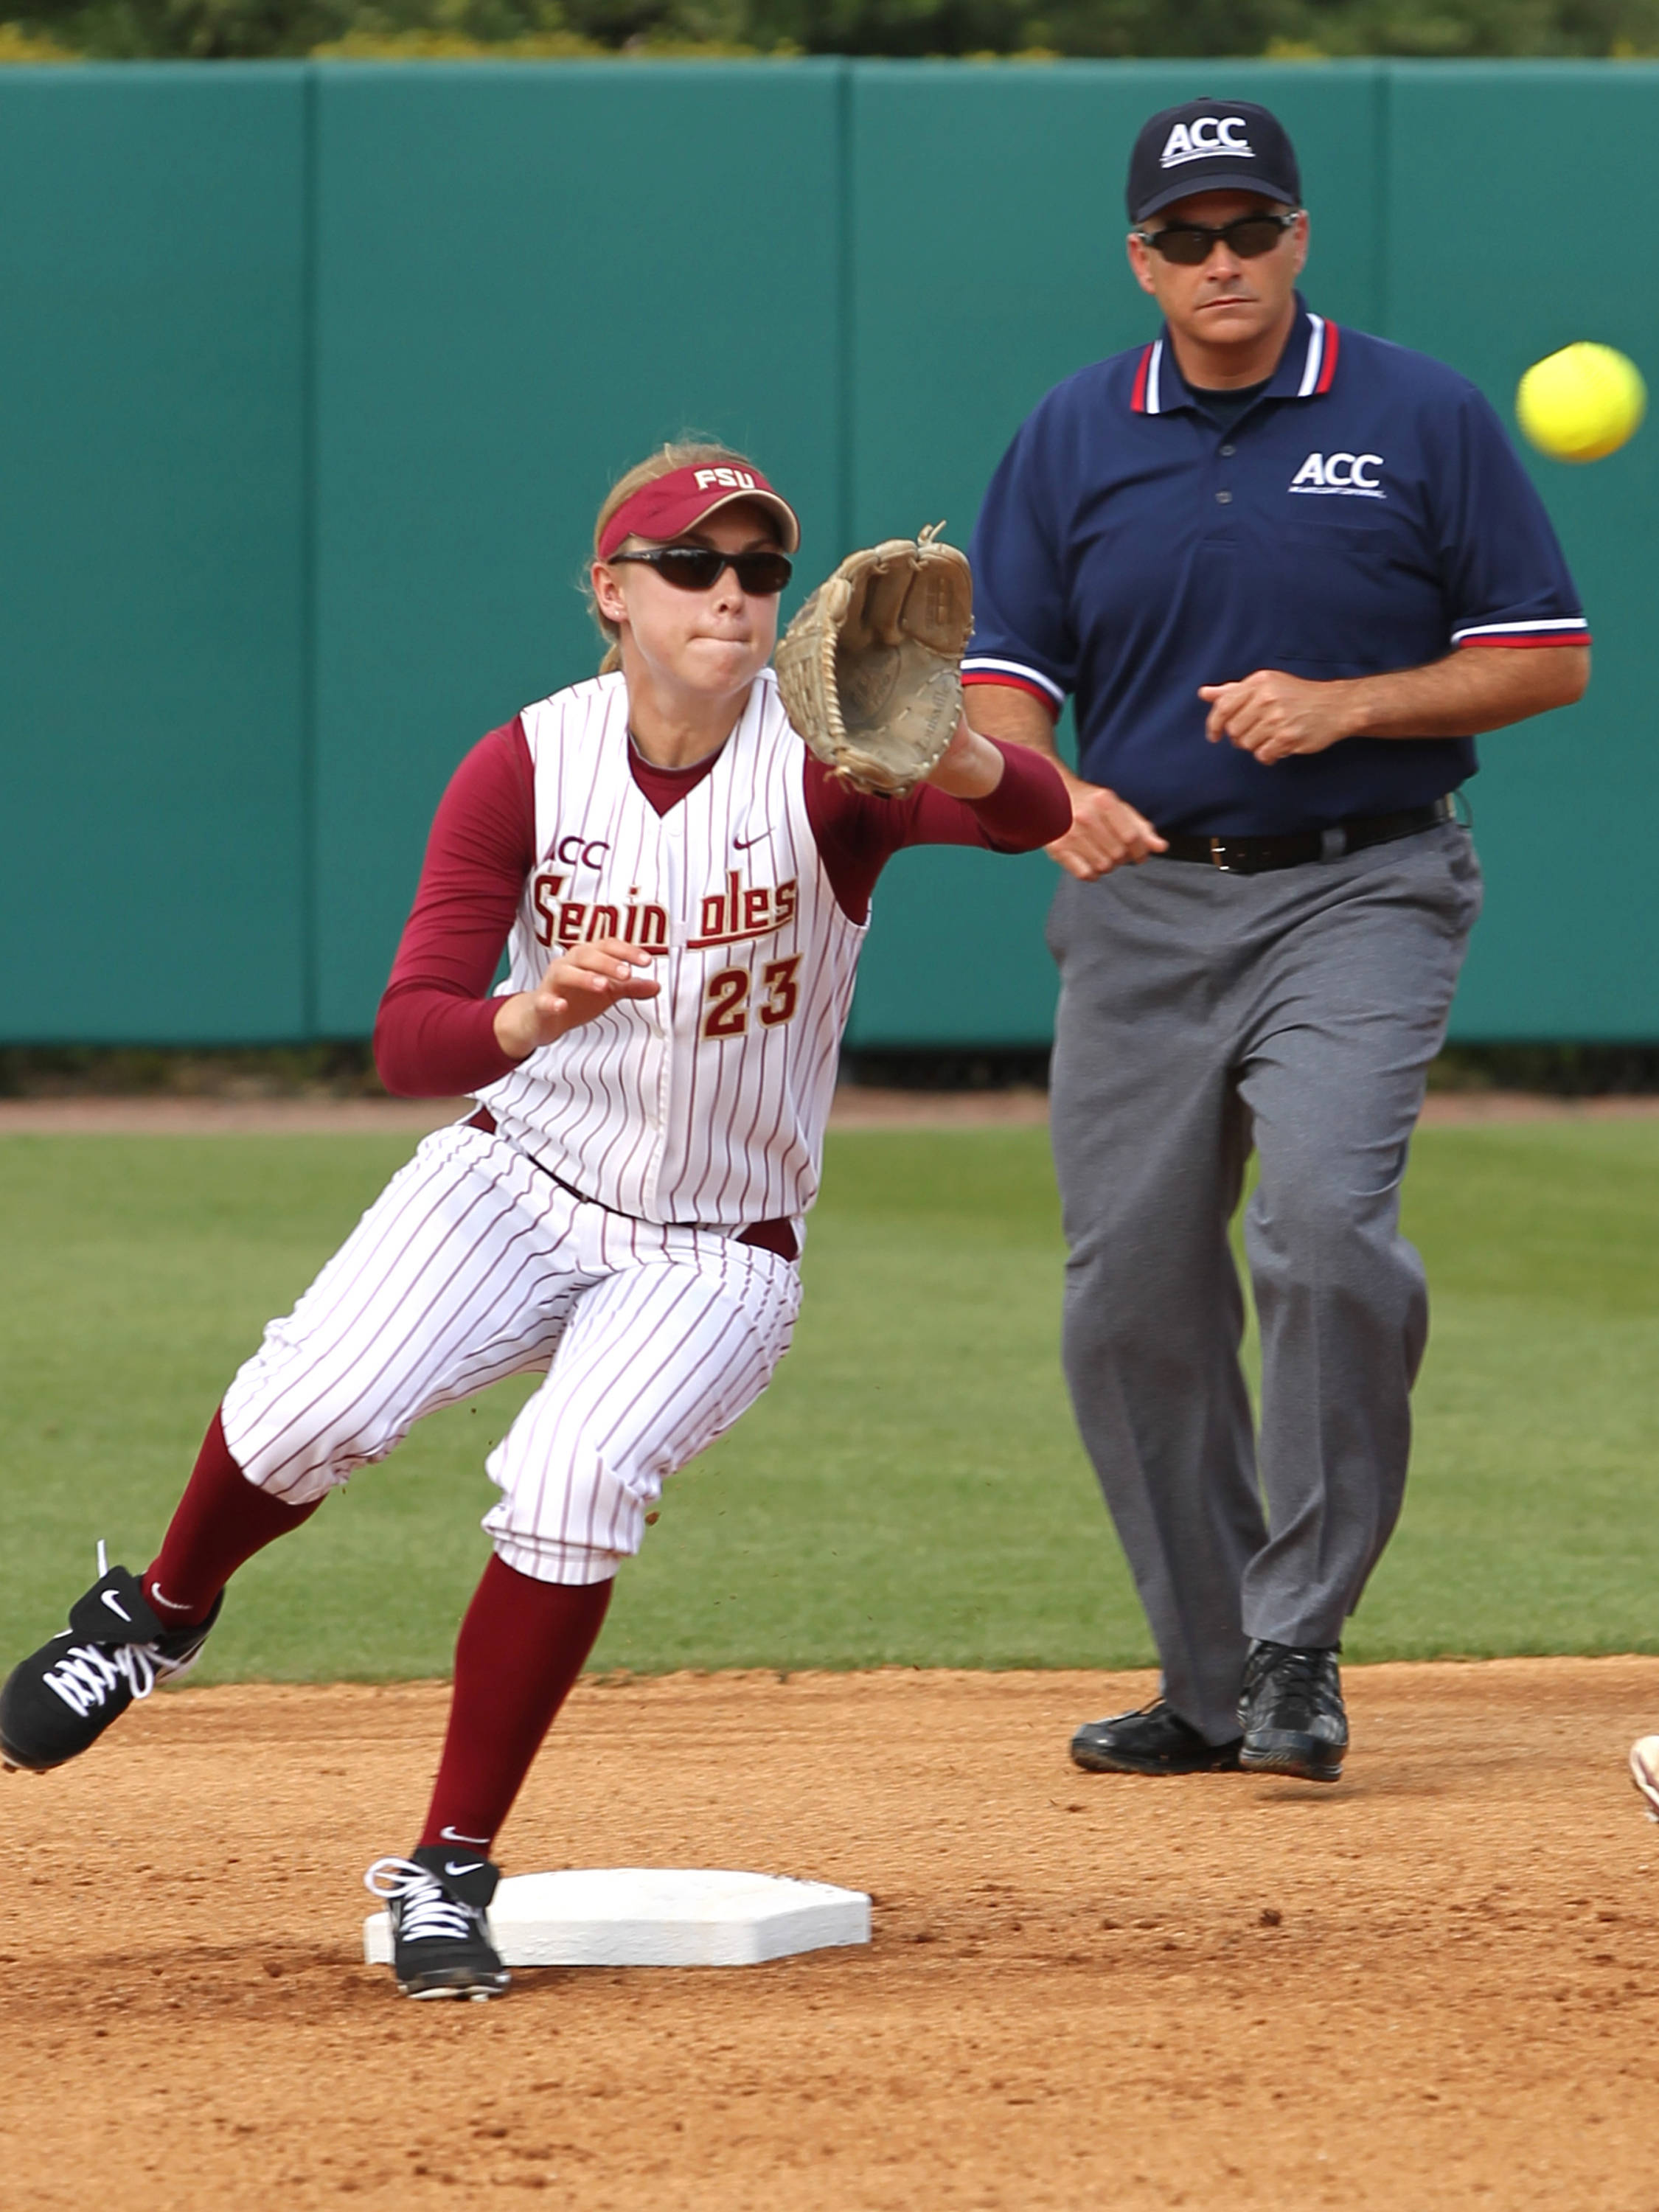 Kelly Hensley, FSU VS BC, ACC Championship Quarterfinals, Tallahassee, FL,  05/09/13 . (Photo by Steve Musco)